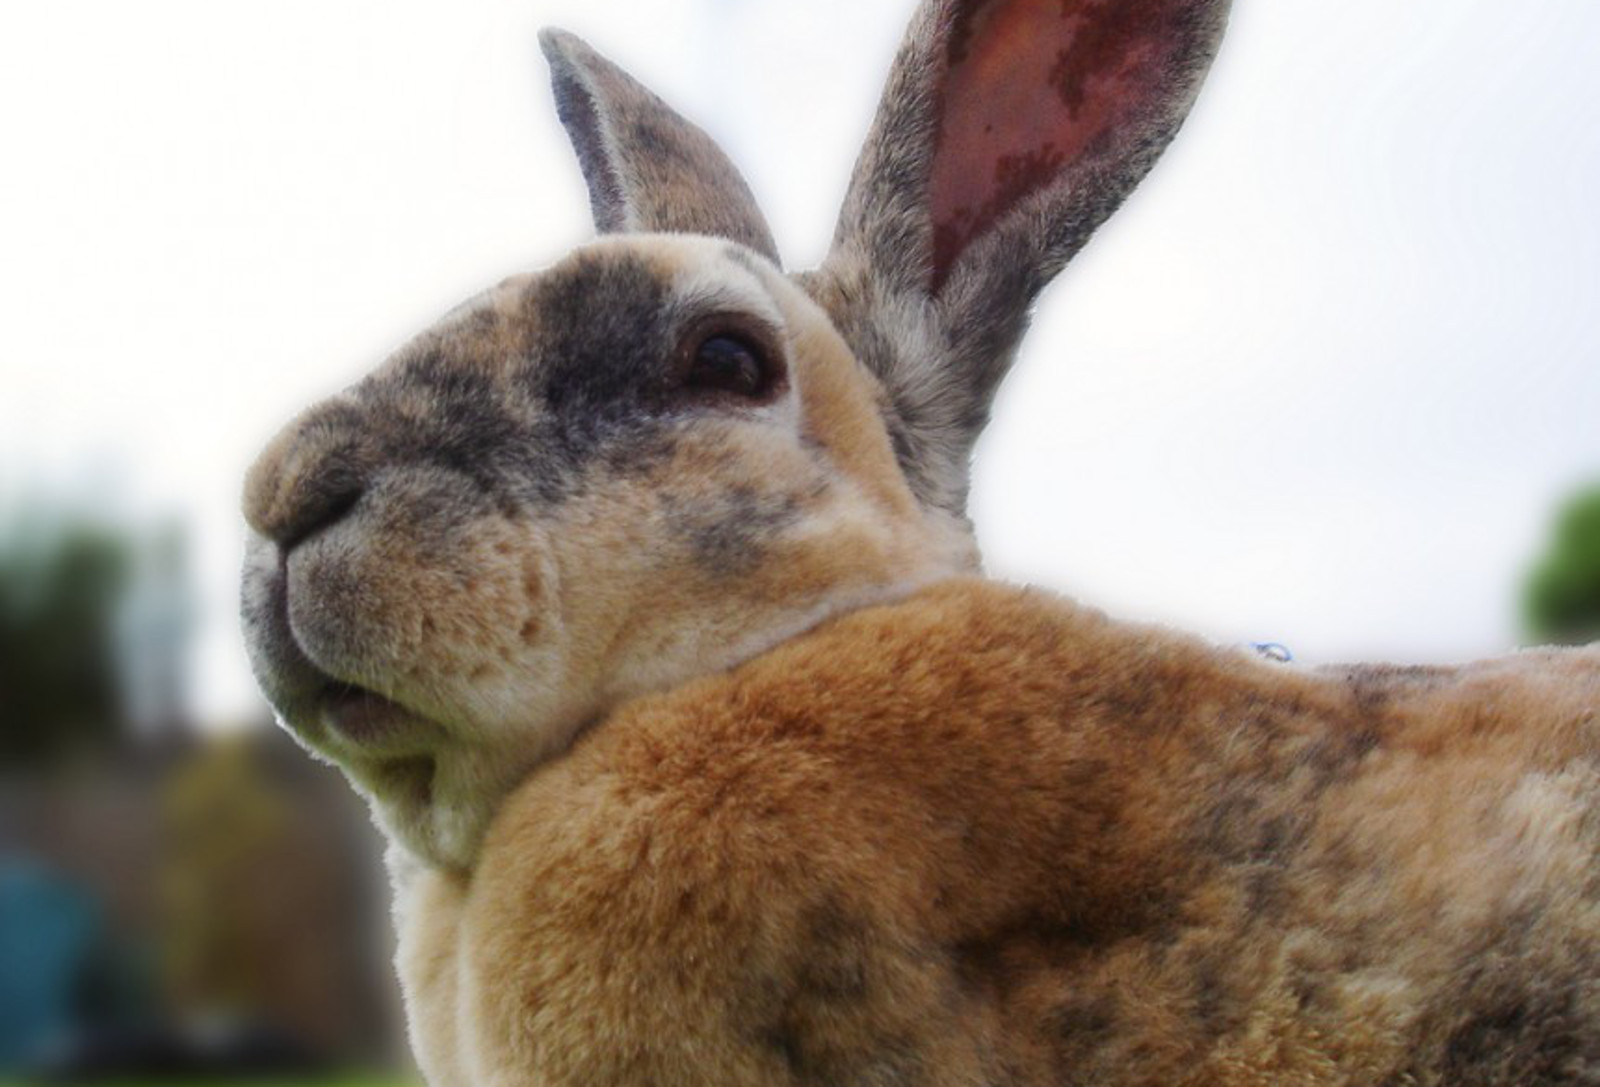 The Problem With Rabbit Meat...Besides the Obvious